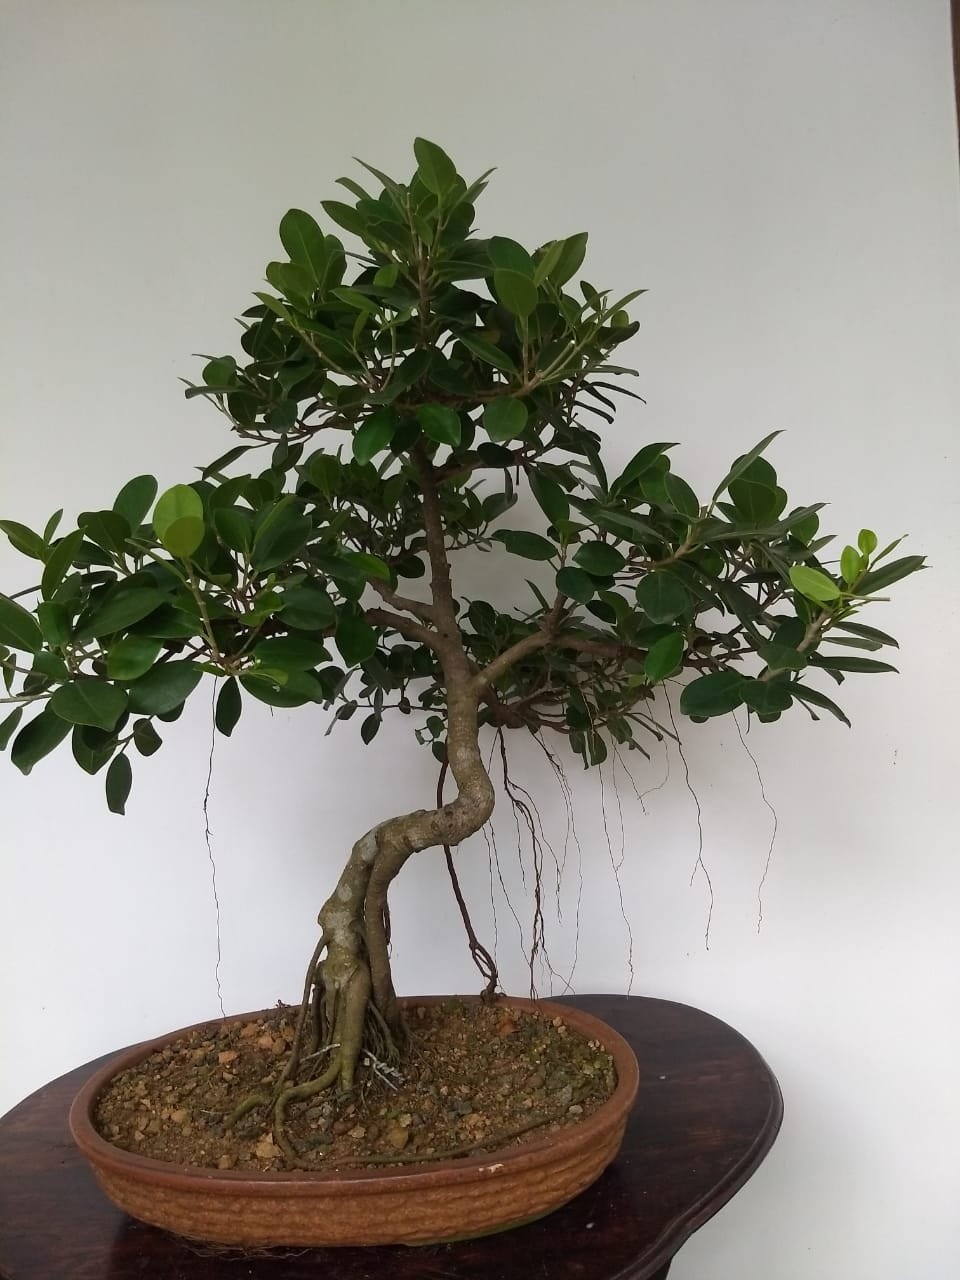 Bonsai plants ideal gifts for your loved ones.